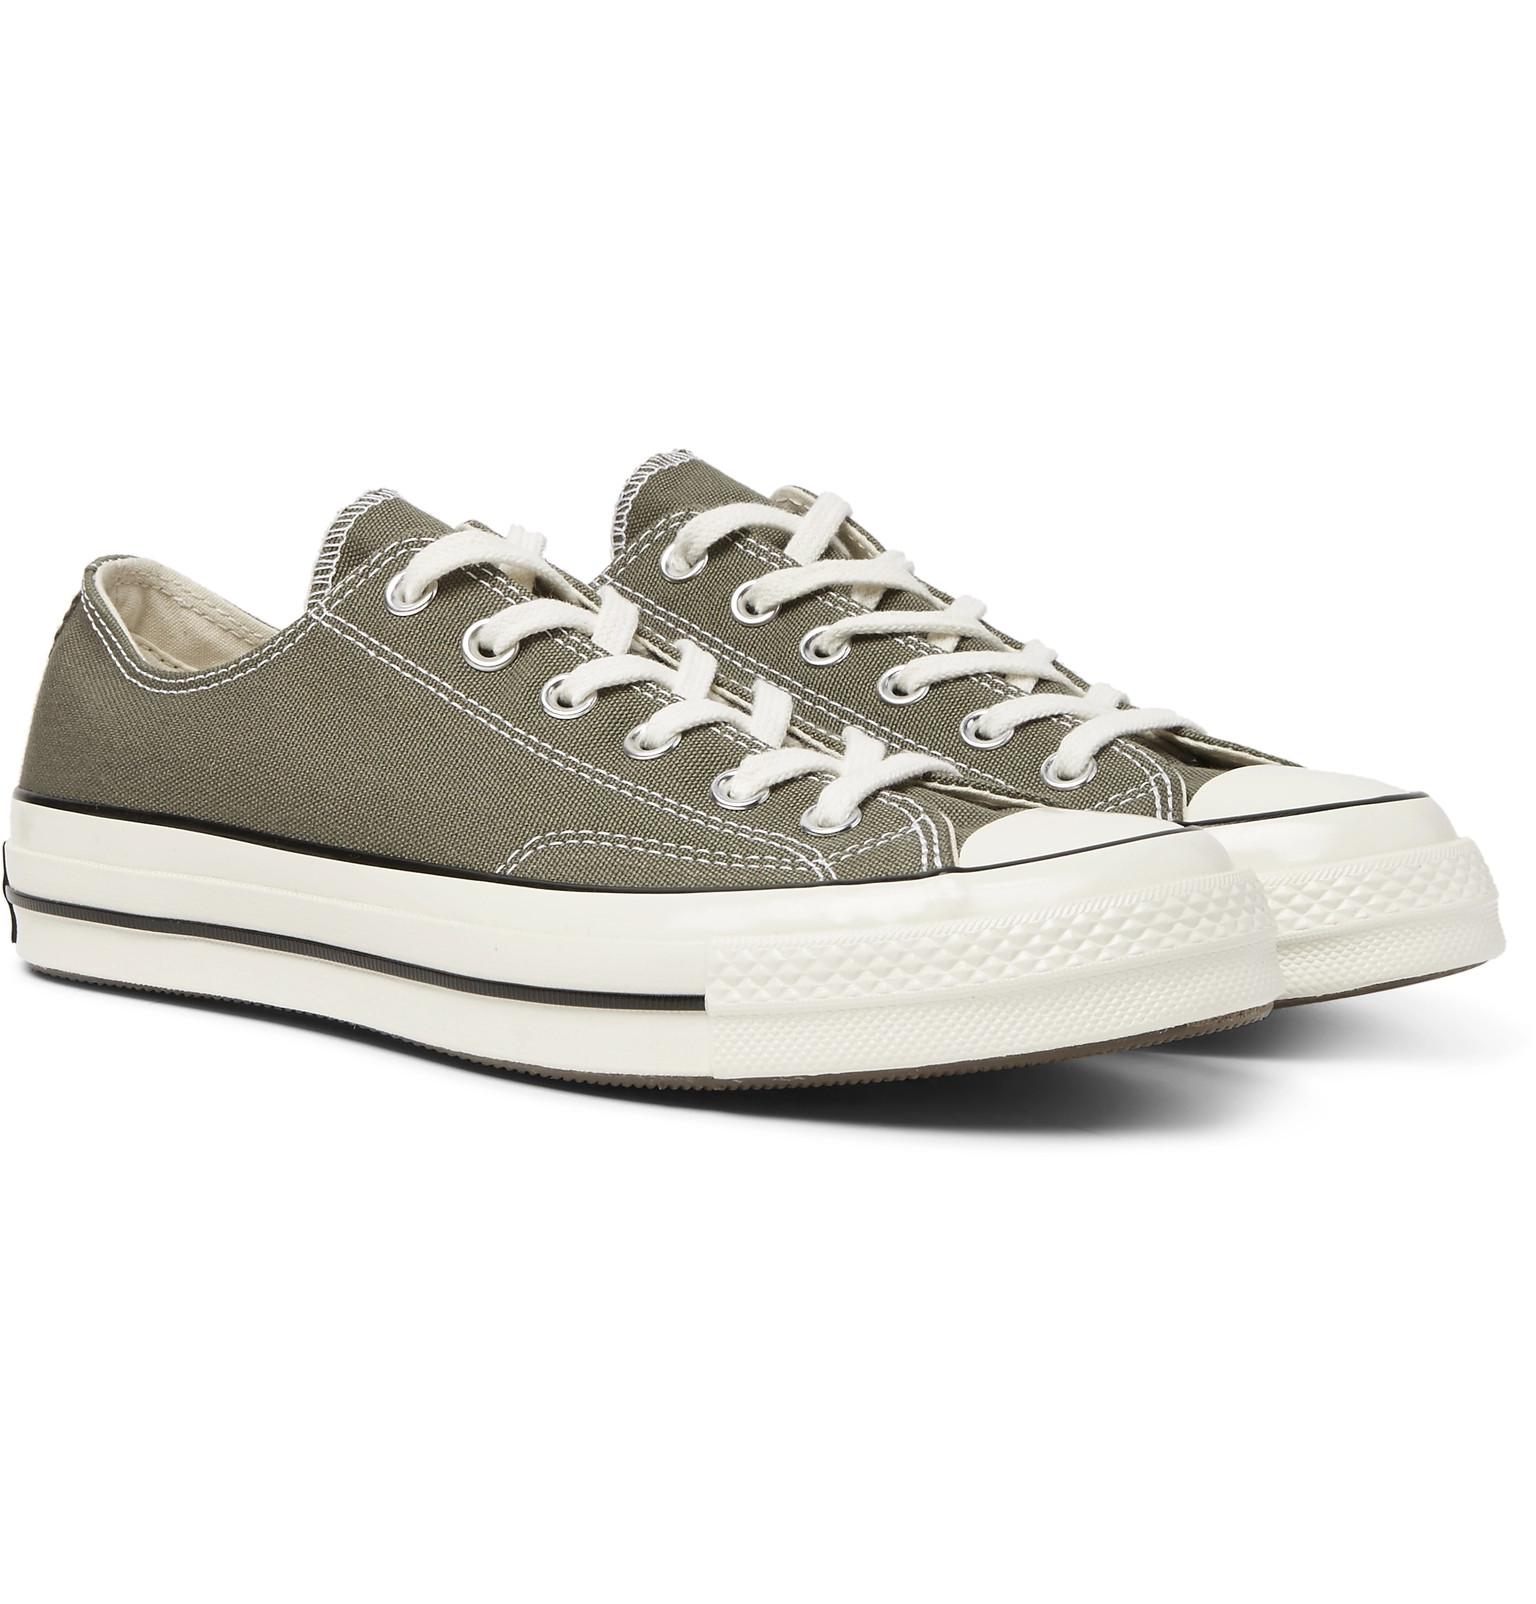 fe972bb75080 Lyst - Converse 1970s Chuck Taylor All Star Canvas Sneakers for Men